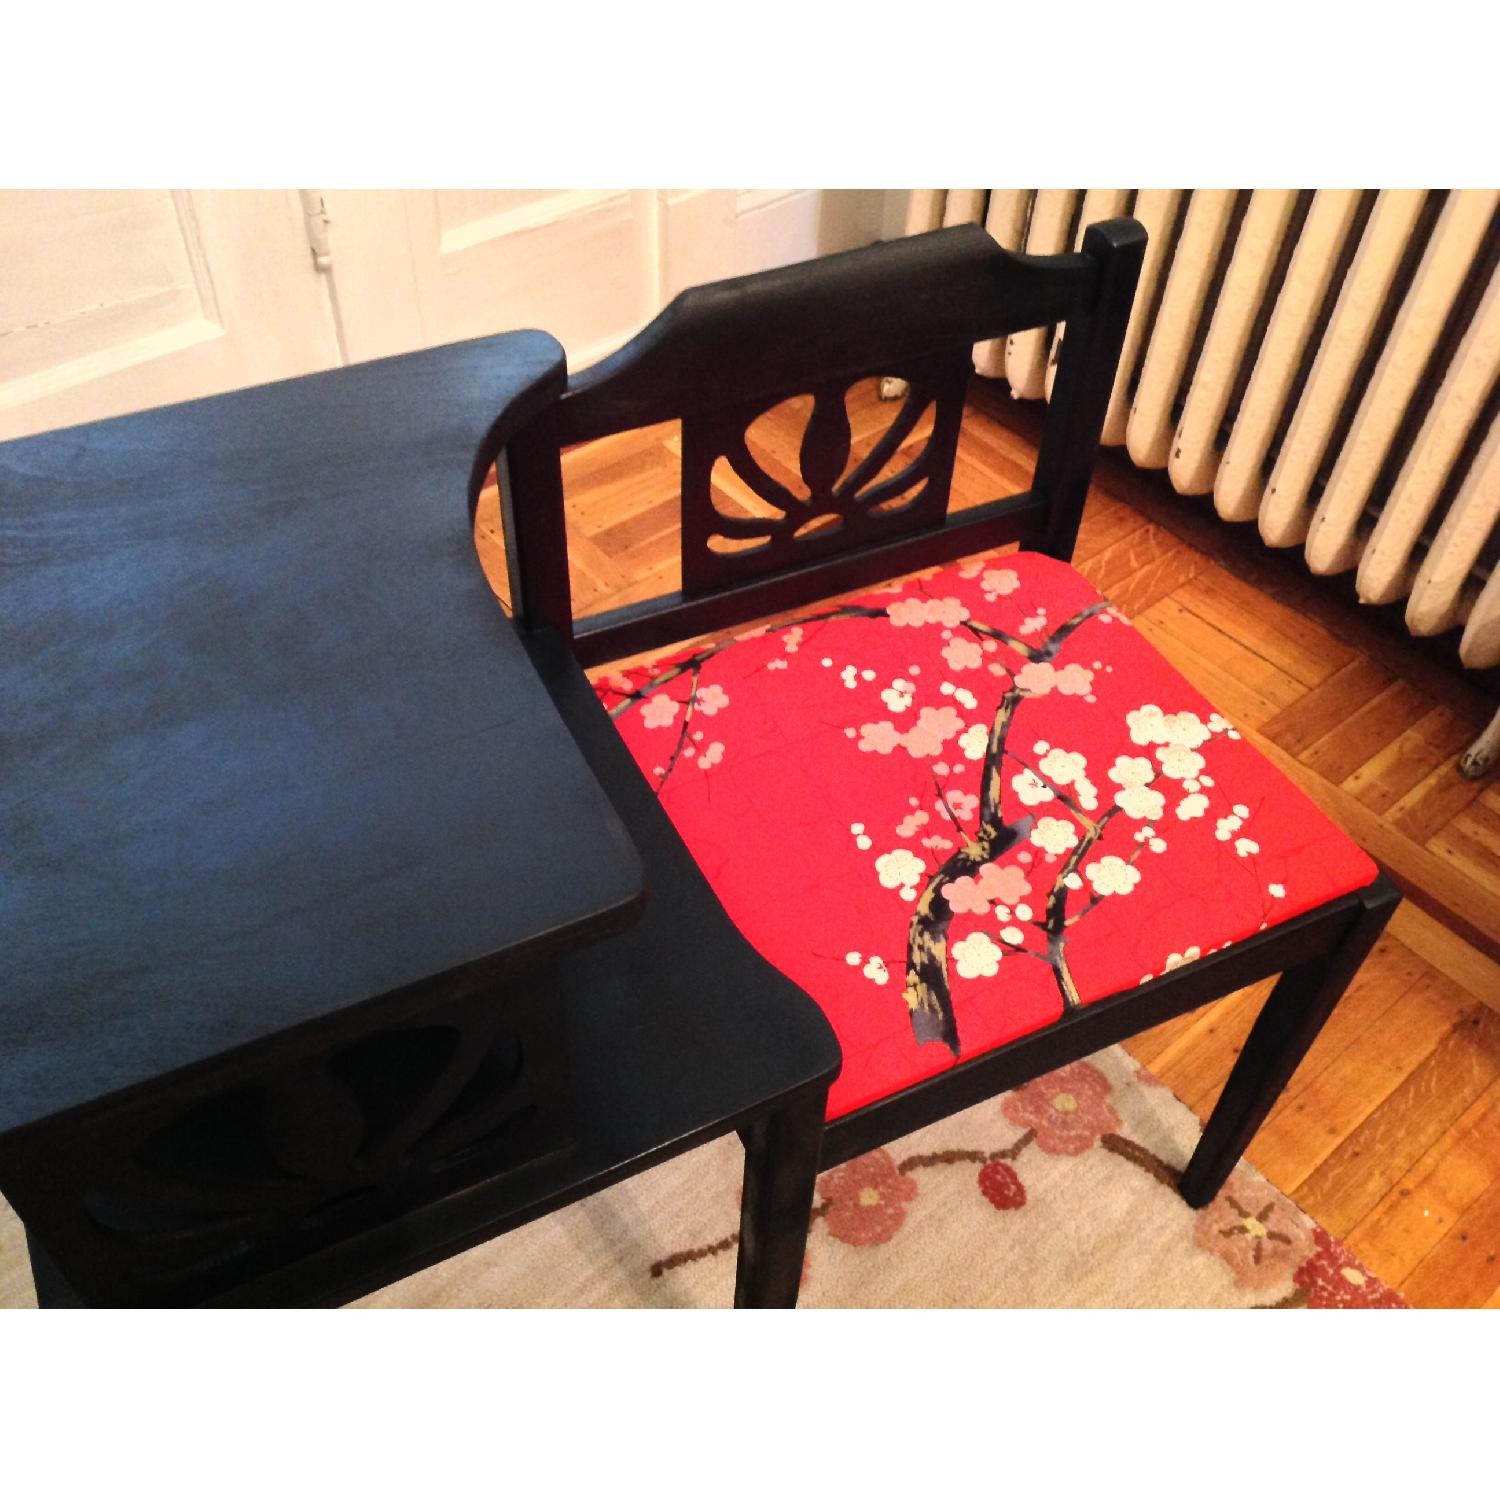 Upcycled Vintage Telephone Gossip Table/Chair - Hot Pink/Red Cherry Blossom Fabric - image-5